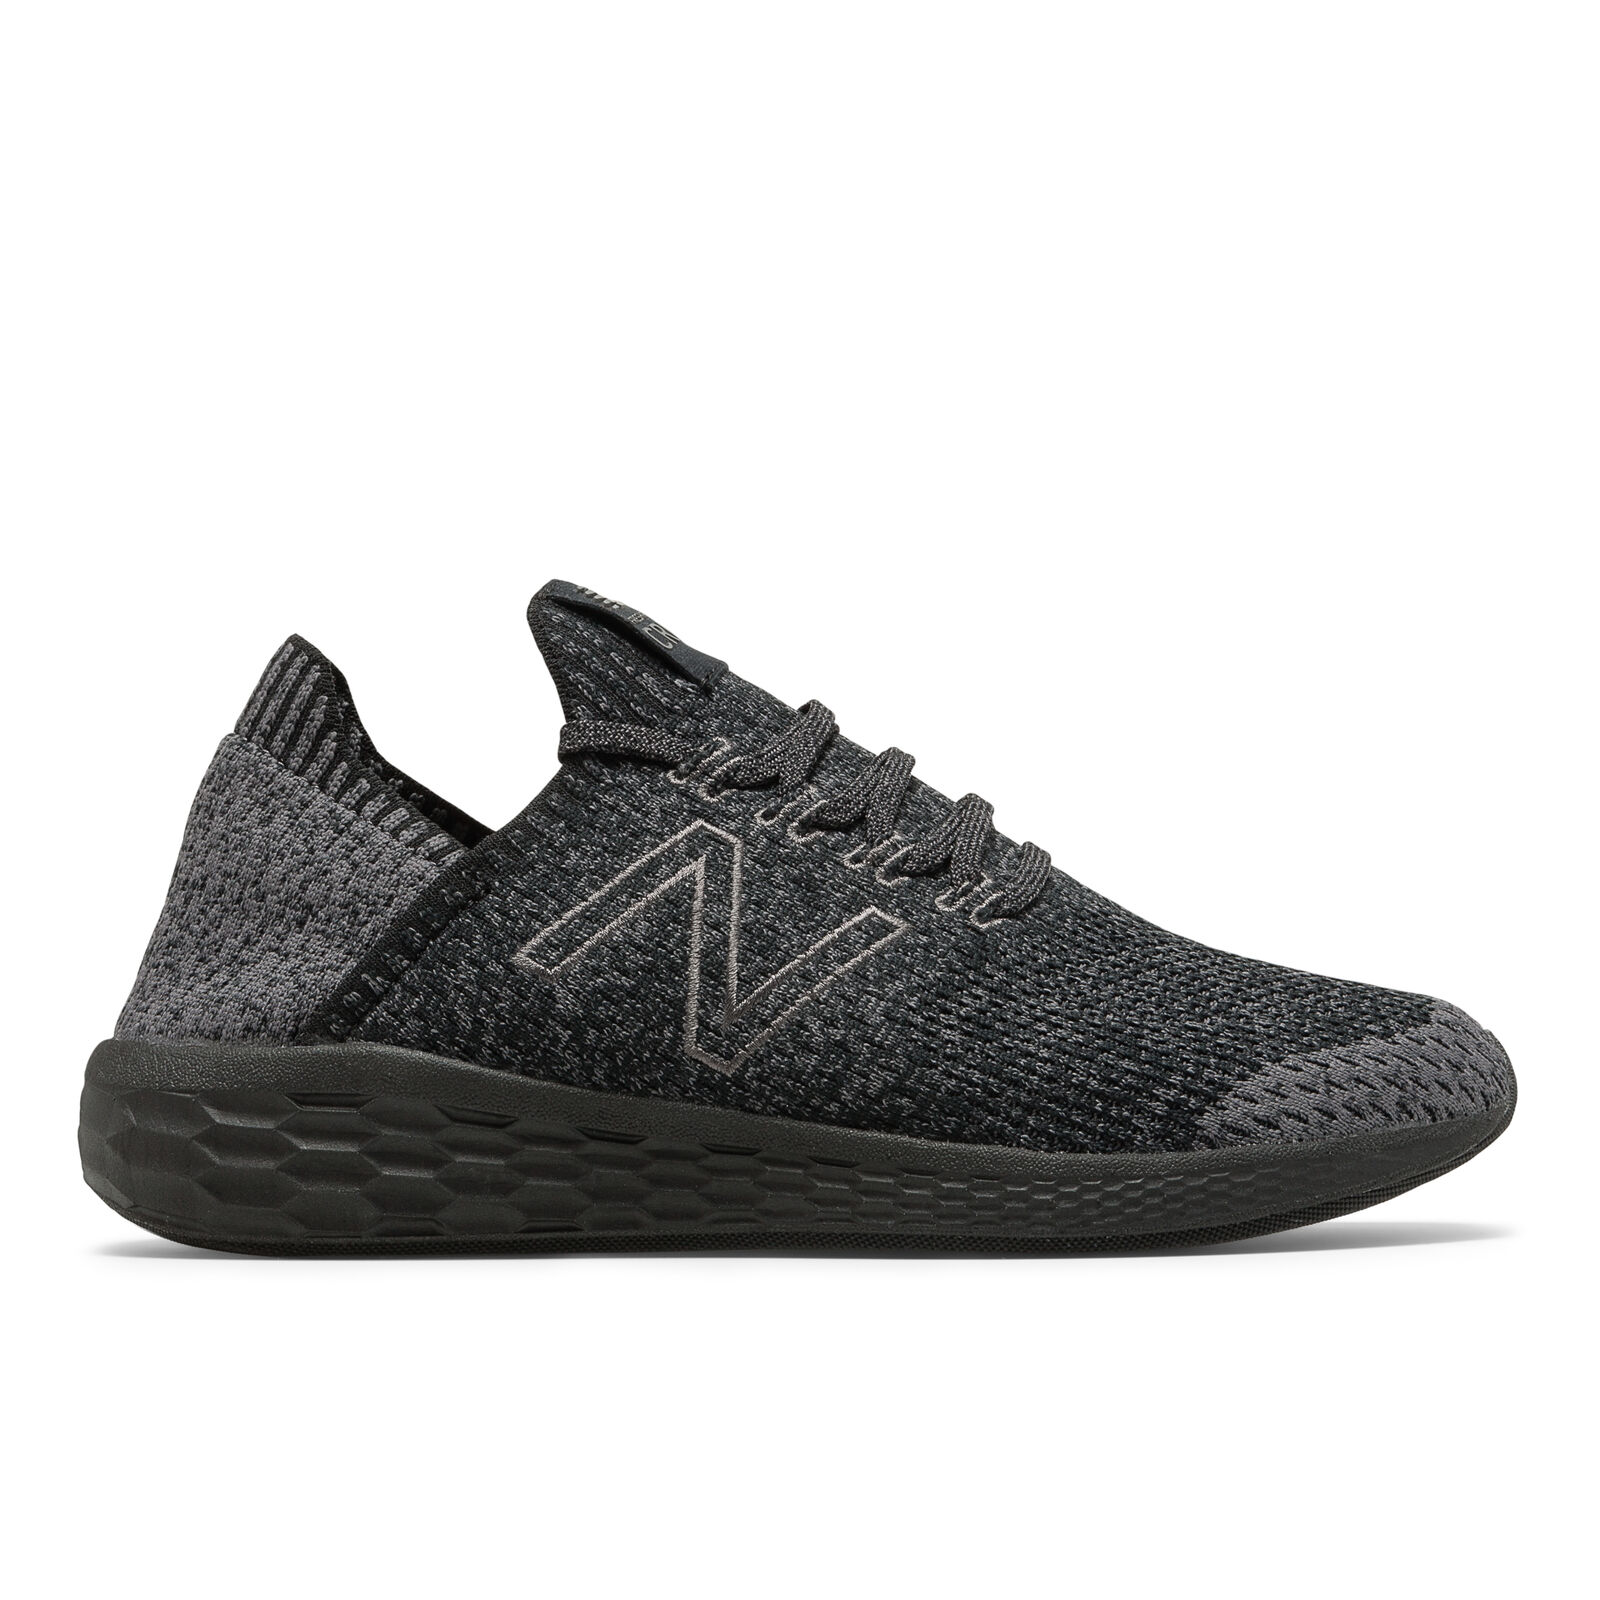 New Balance MCRZSSM2 Cruz v2 Fresh Foam Magnet Black Men's Running shoes